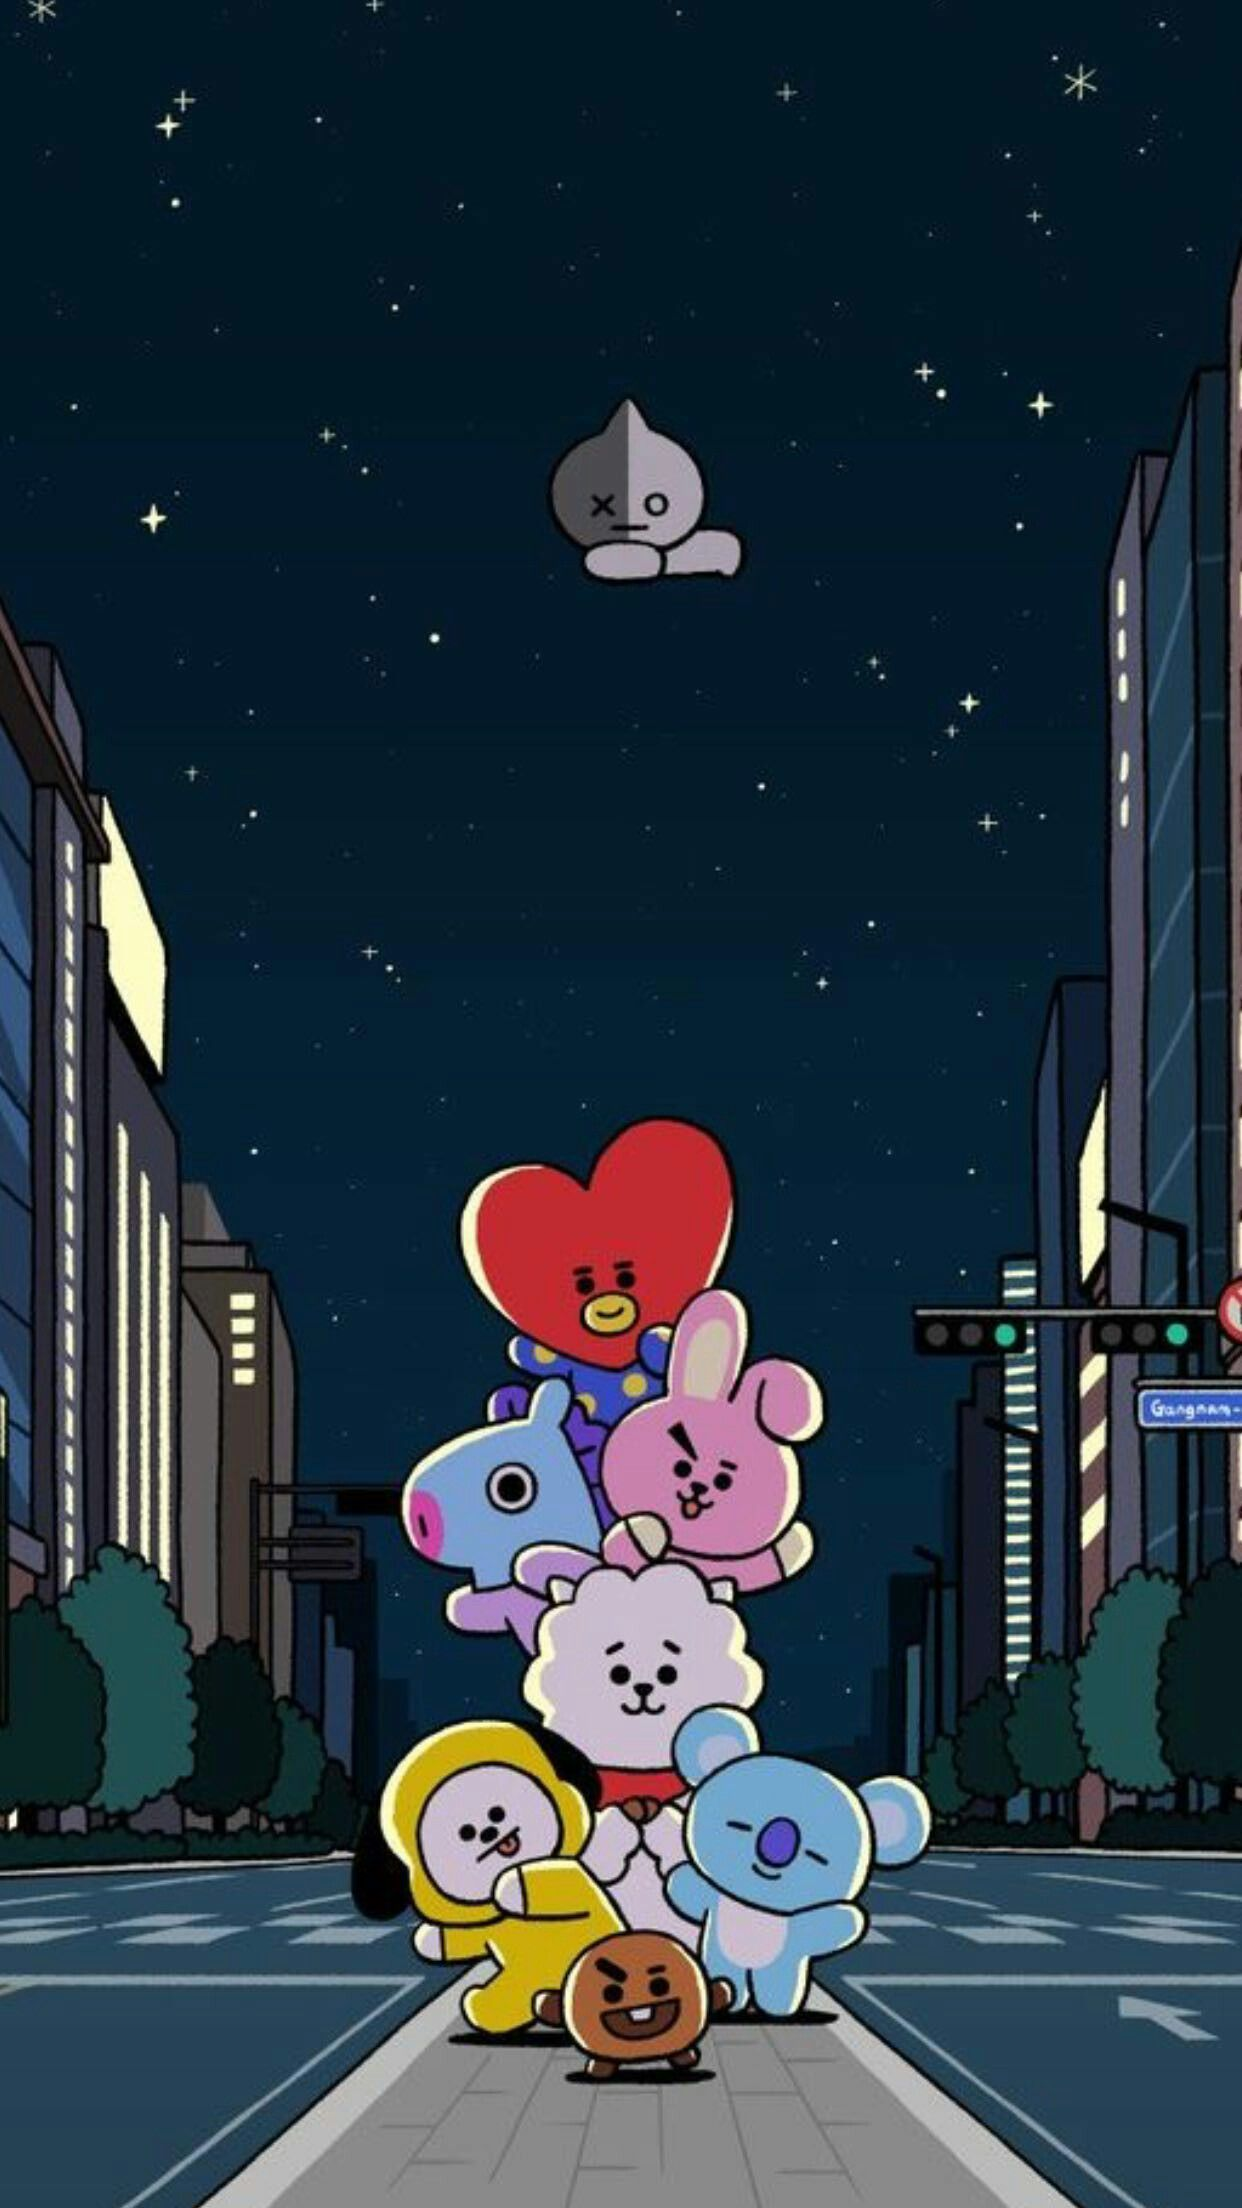 Pin By Bts Army On Wallpaper Bt21 Bts Wallpaper Anime Wallpaper Iphone Bts Drawings